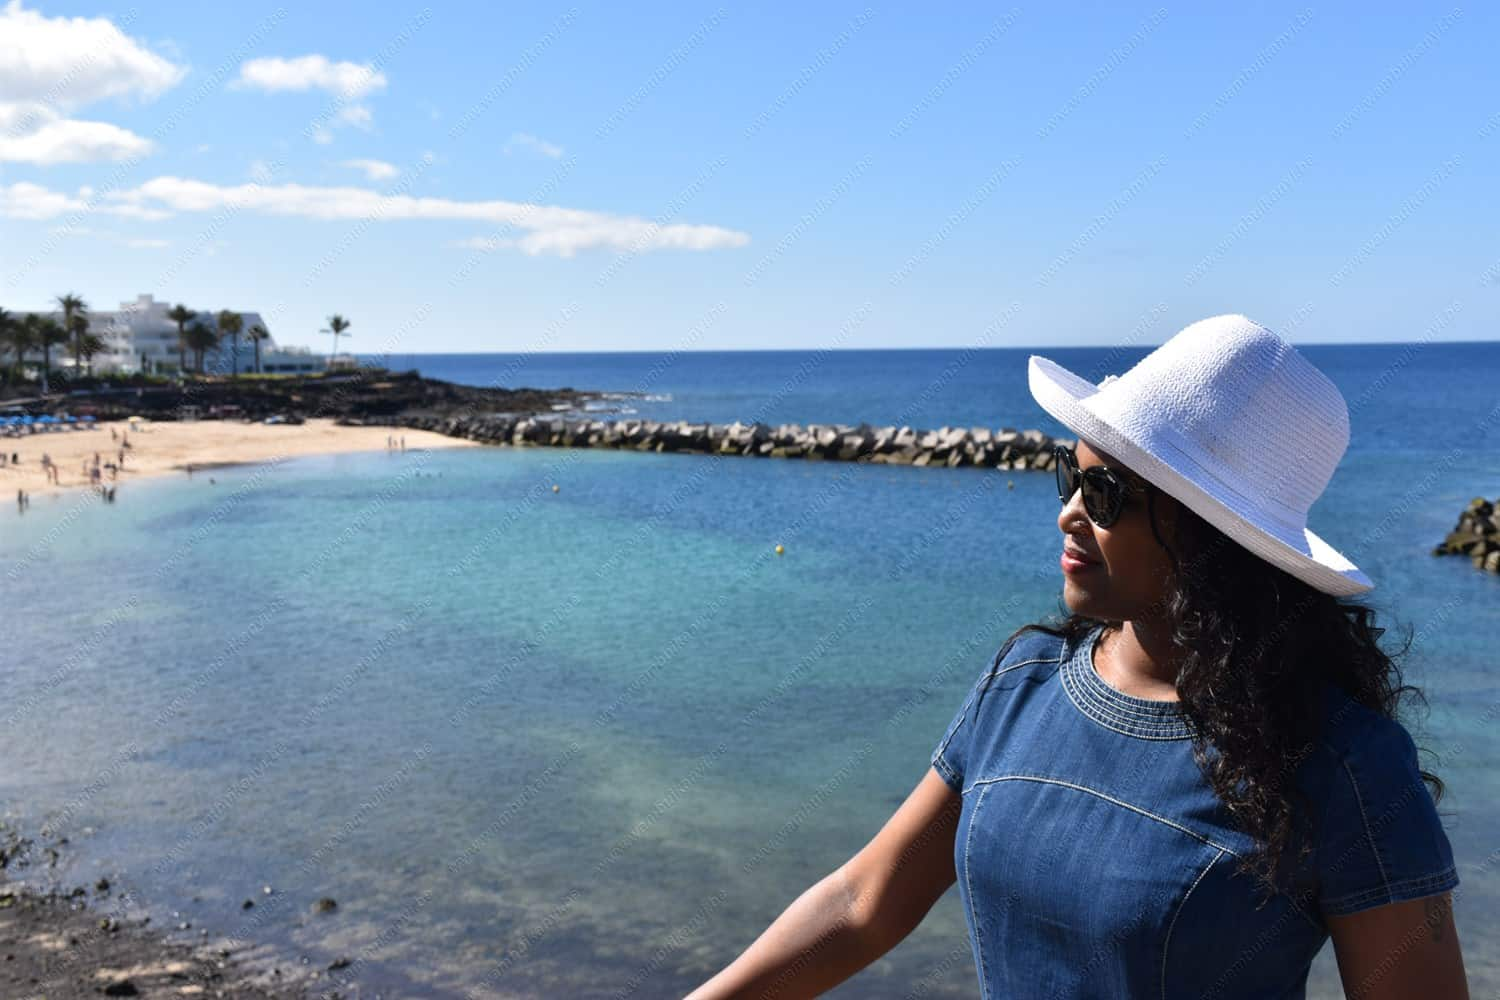 Read more about the article Playa Flamingo (Flamingo Beach) in Lanzarote